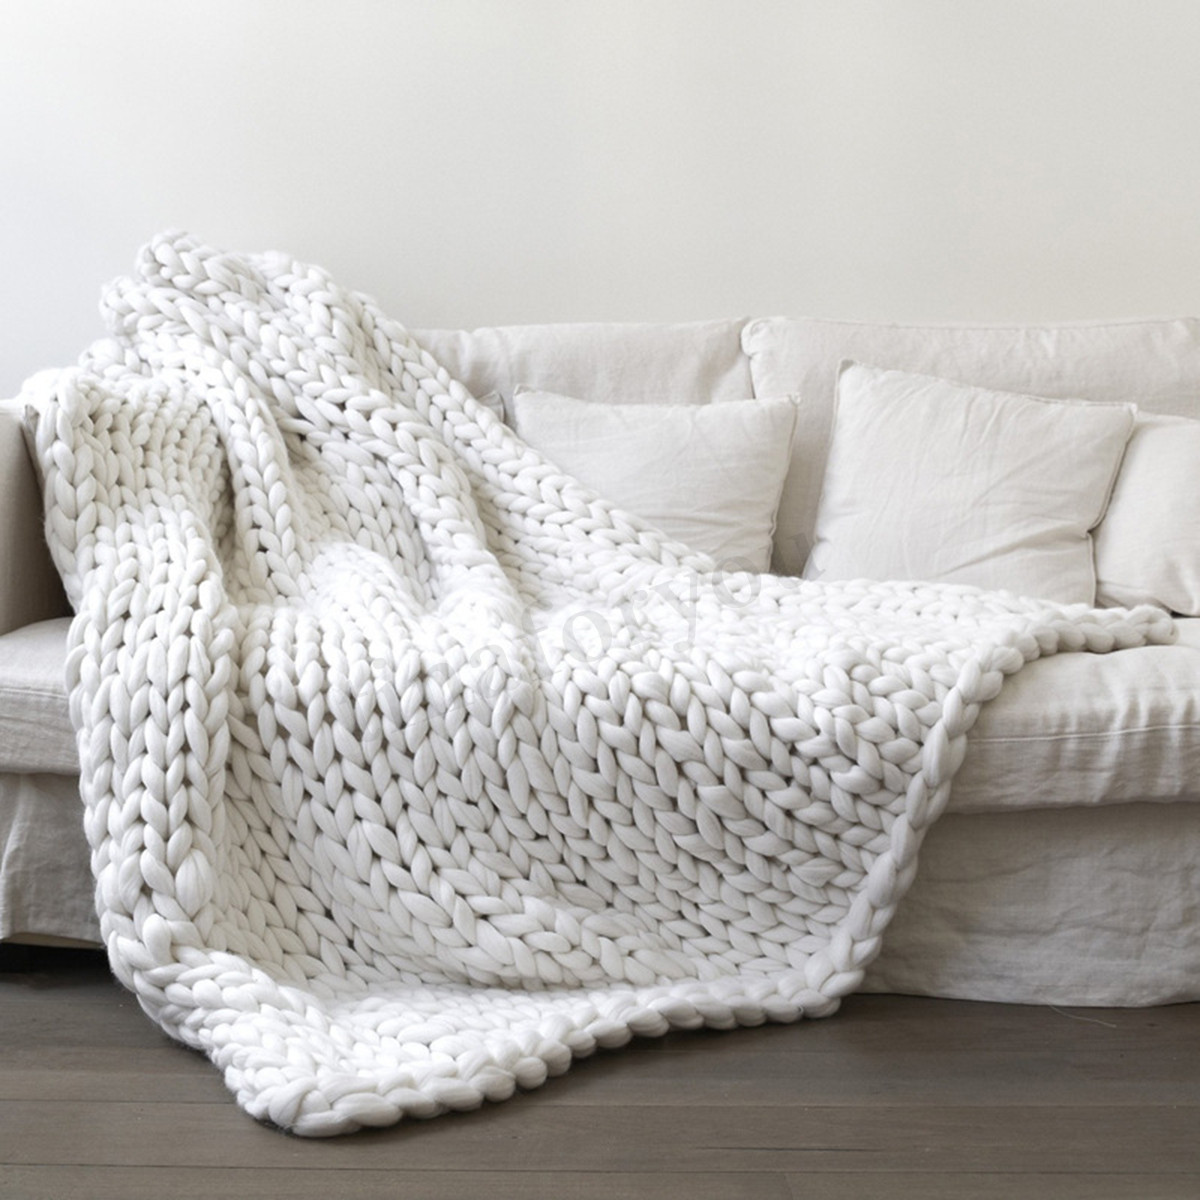 Soft Warm Handmade Chunky Knit Blanket Thick Yarn